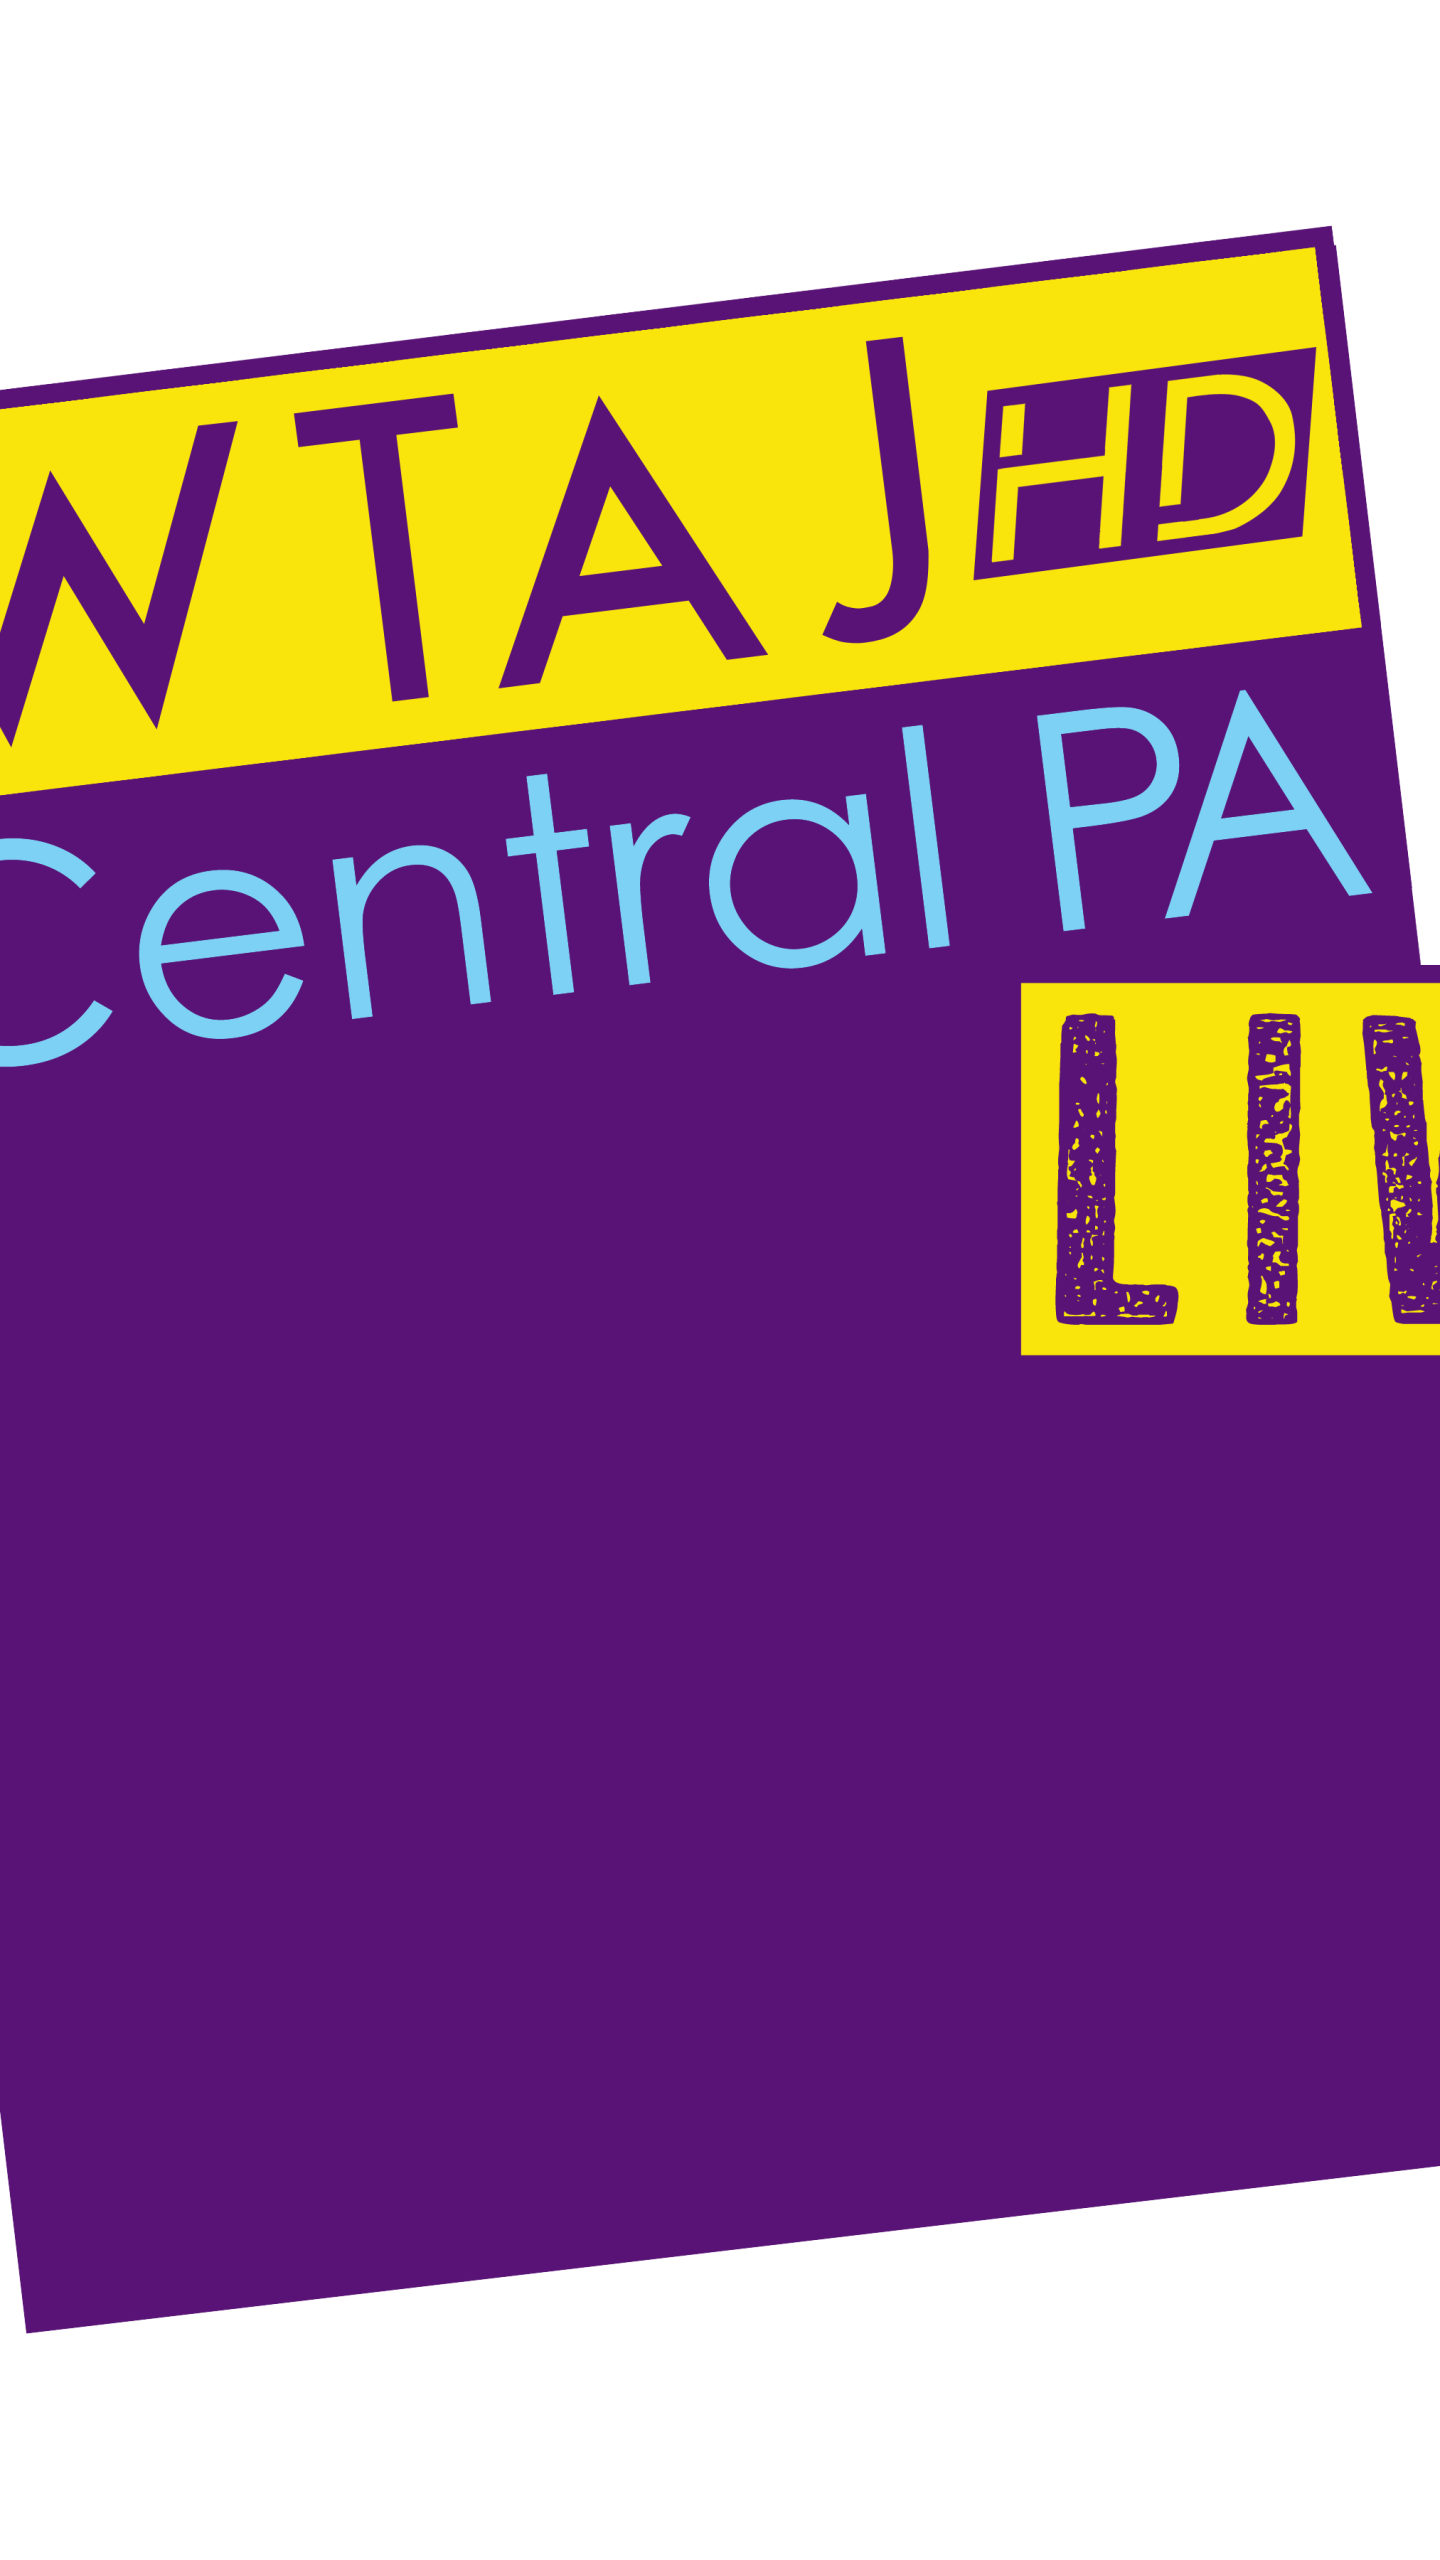 Central PA Live Logo.png